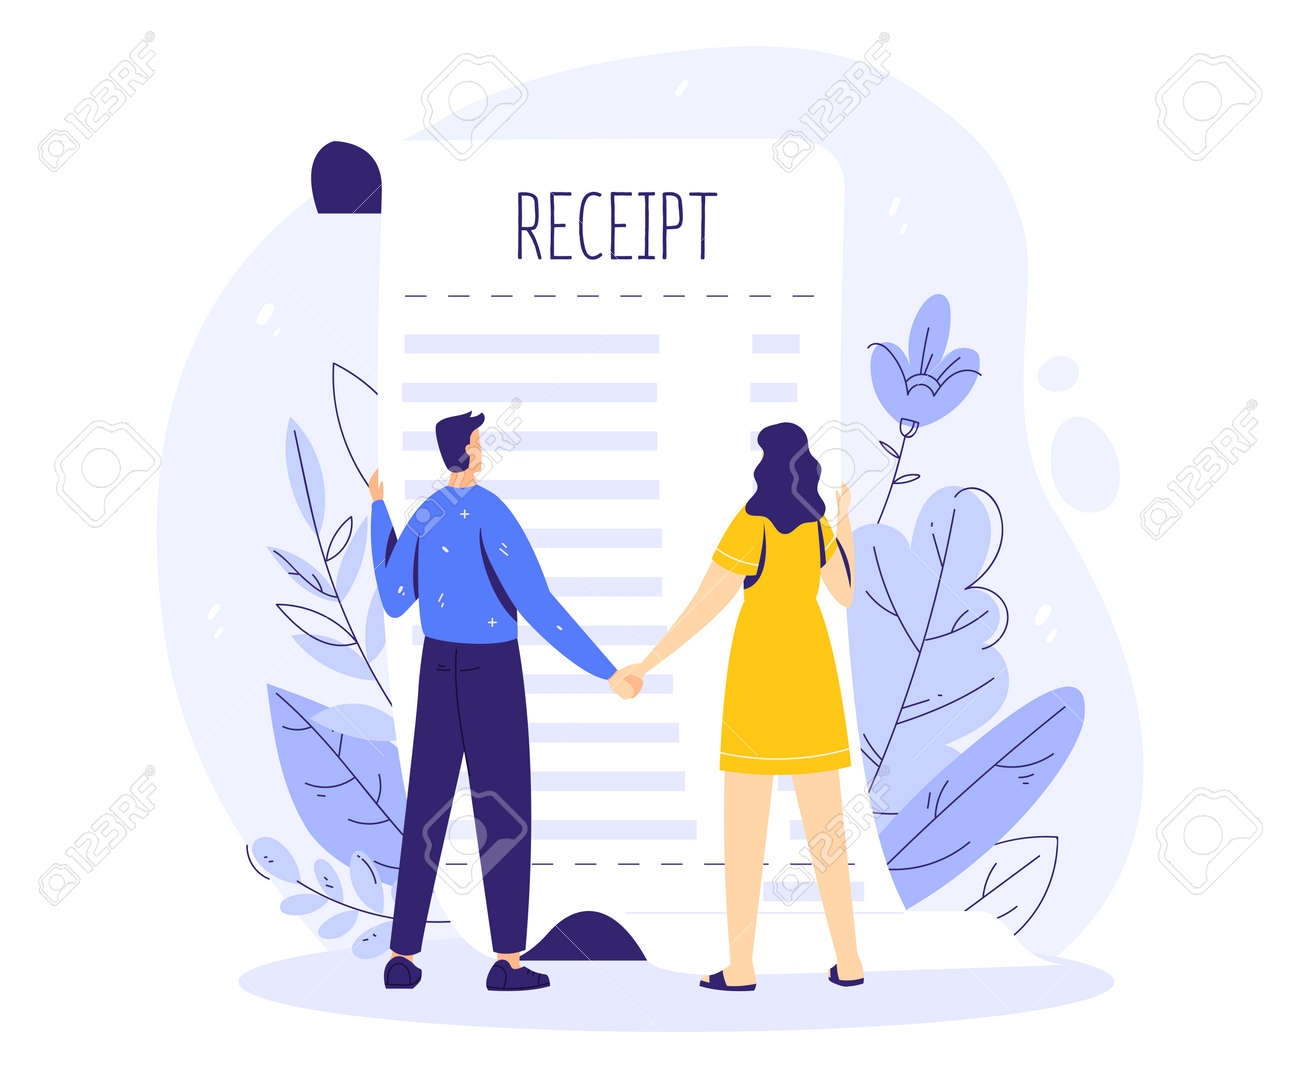 Family budget concept. Man and woman couple hold hands and look at the shop receipt. - 170358971